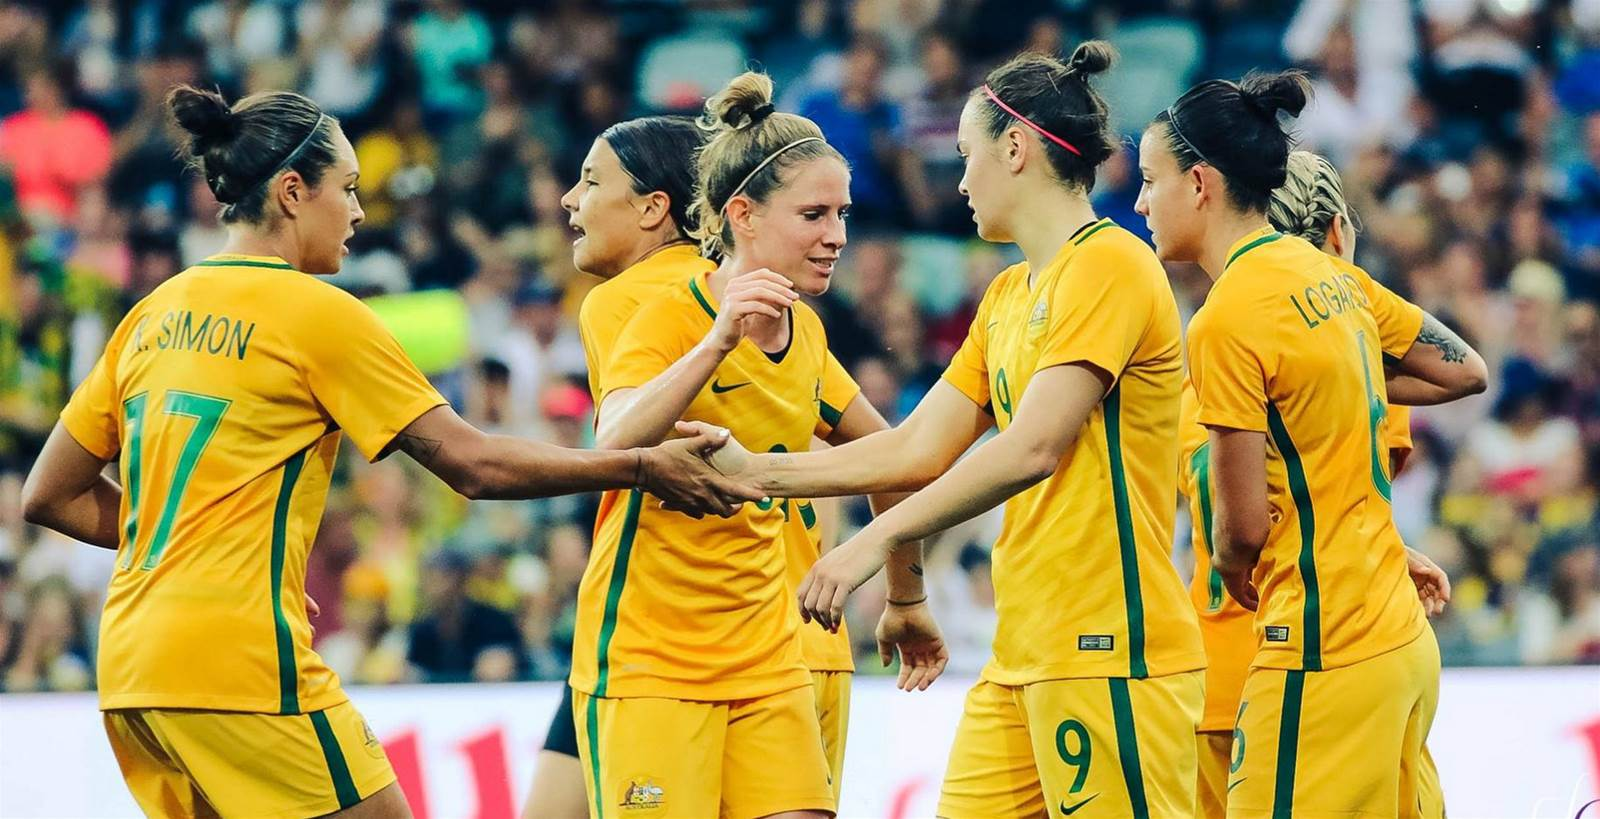 Algarve Cup fixtures confirmed for Matildas